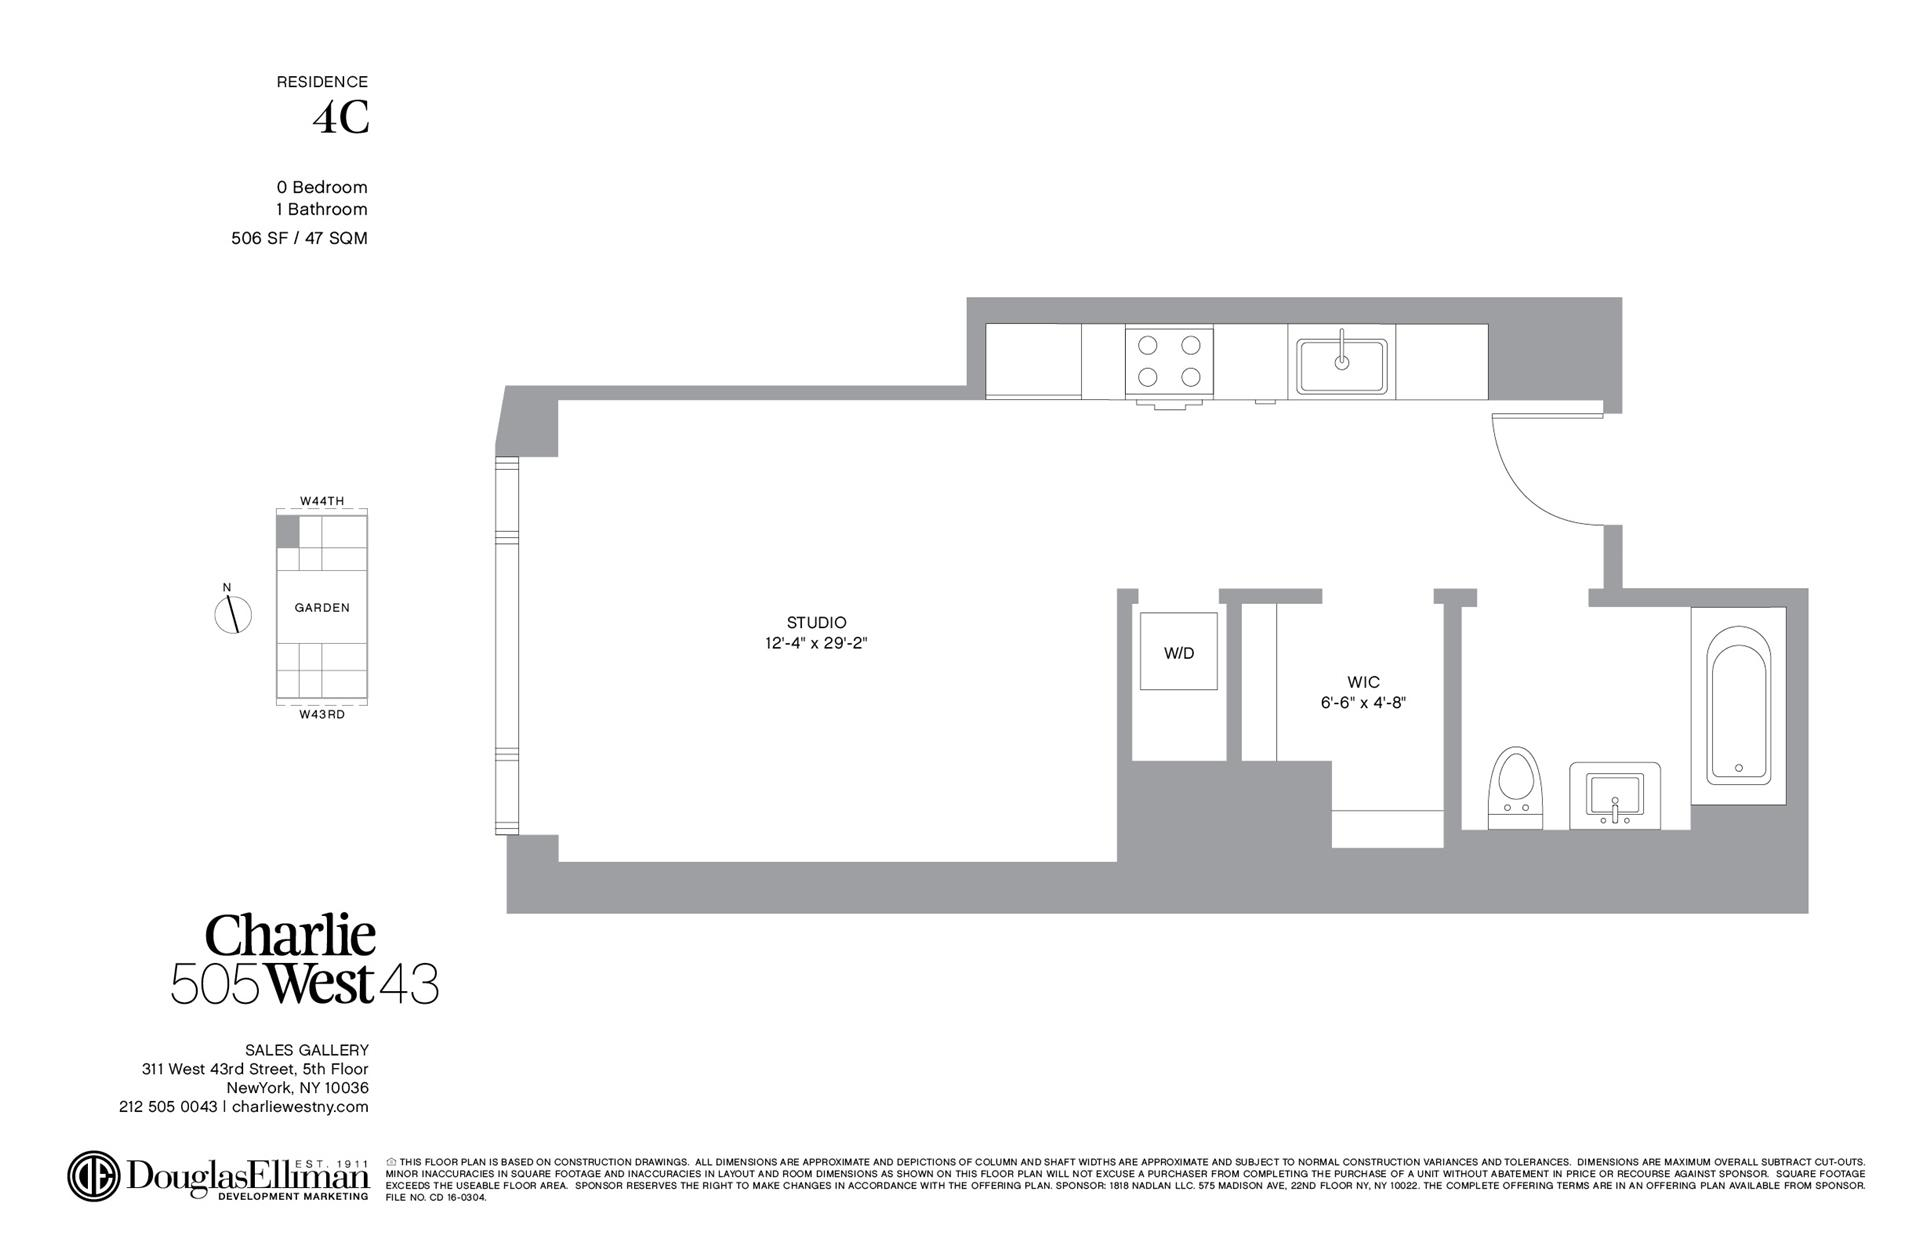 Floor plan of 505 West 43rd St, 4C - Clinton, New York